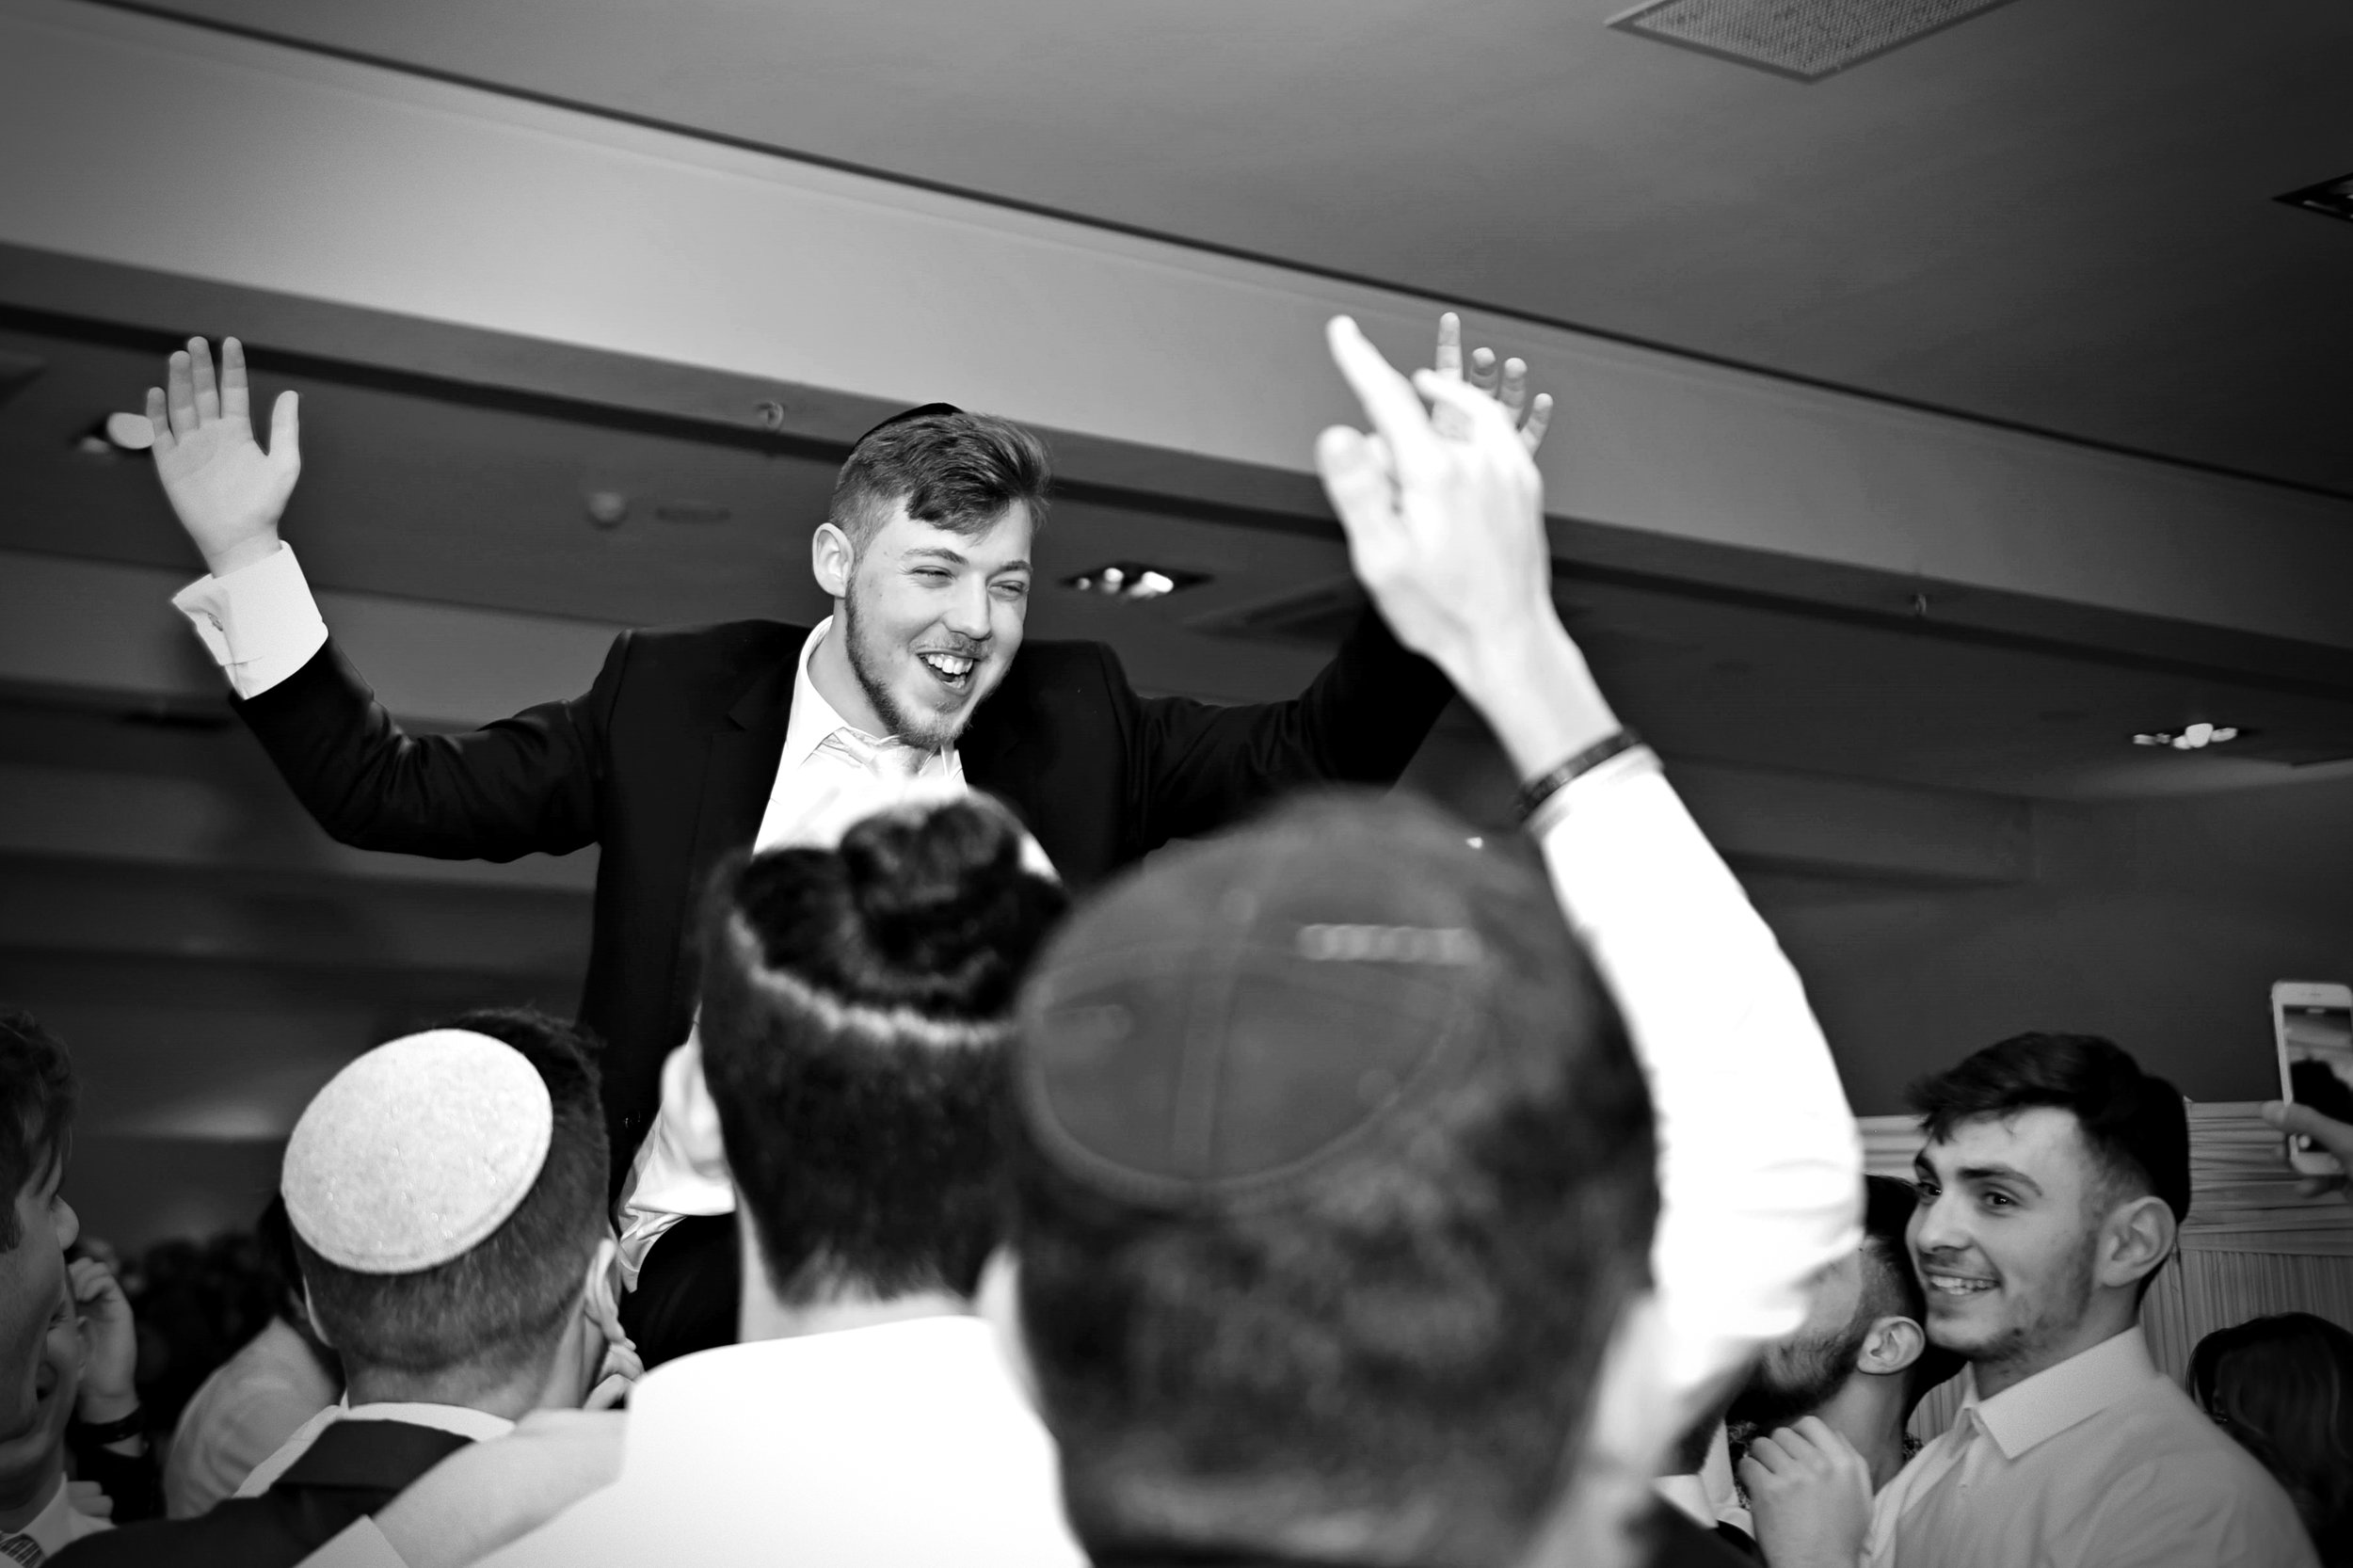 Moshe, the groom, raised onto a friend's shoulders in celebration!